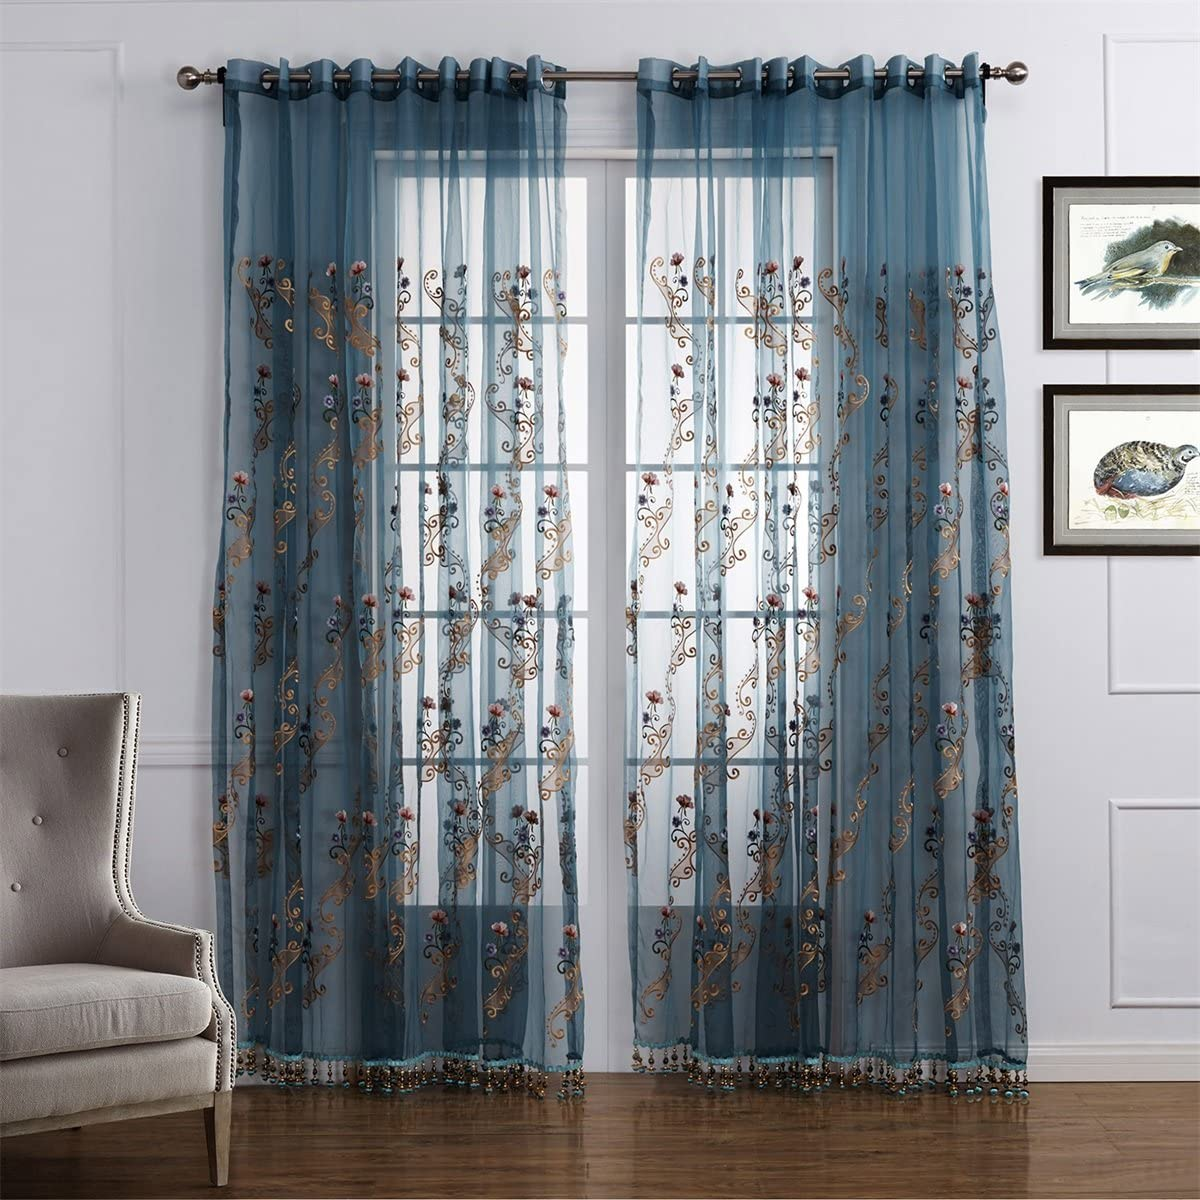 Dreaming Casa Solid Semi Sheer Curtain Floral Embroidery Voile Window Treatment Panels 84 Inches Long for Bedroom Living Room 1 Panel 52 W x 84 L Blue